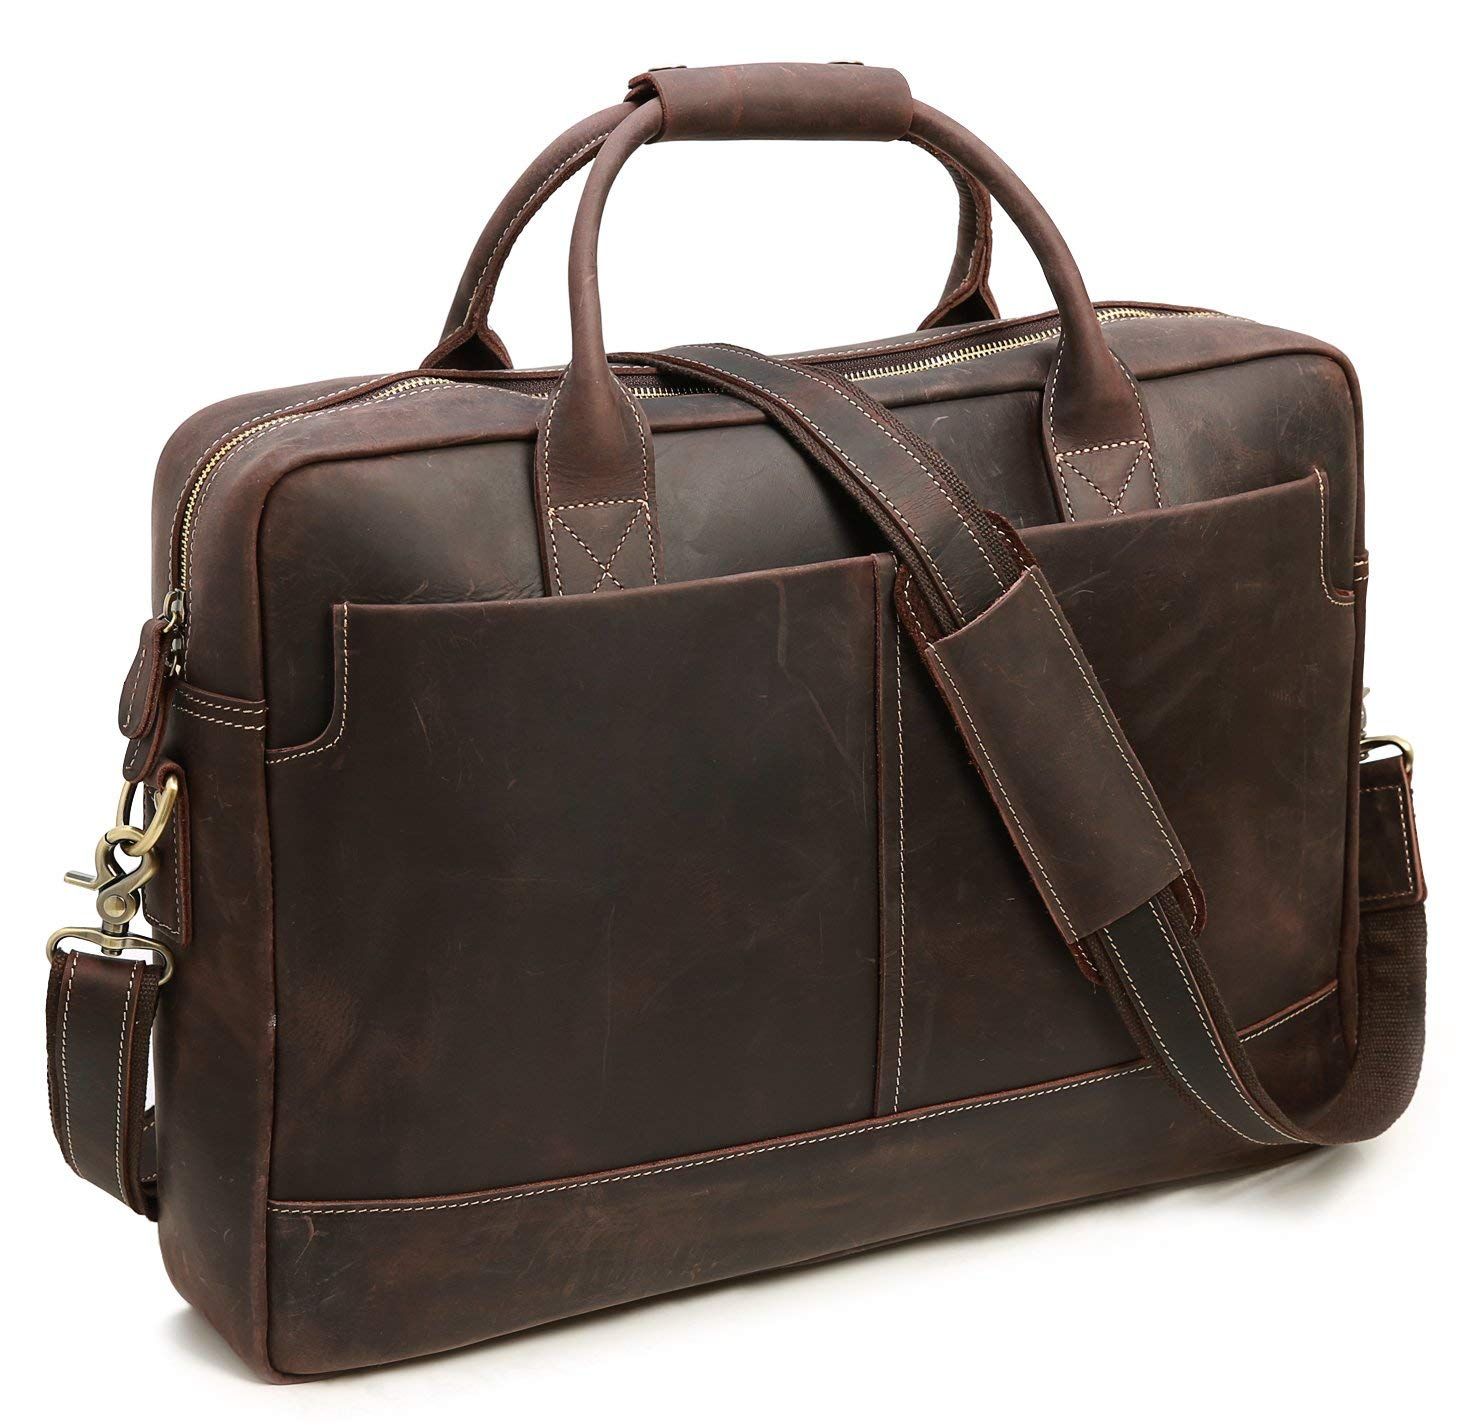 0118a4cbd1b8 Get Quotations · Iswee Men Leather Messenger Bag Laptop Briefcase Vintage  Handbag Attache Case (Large Dark Brown)